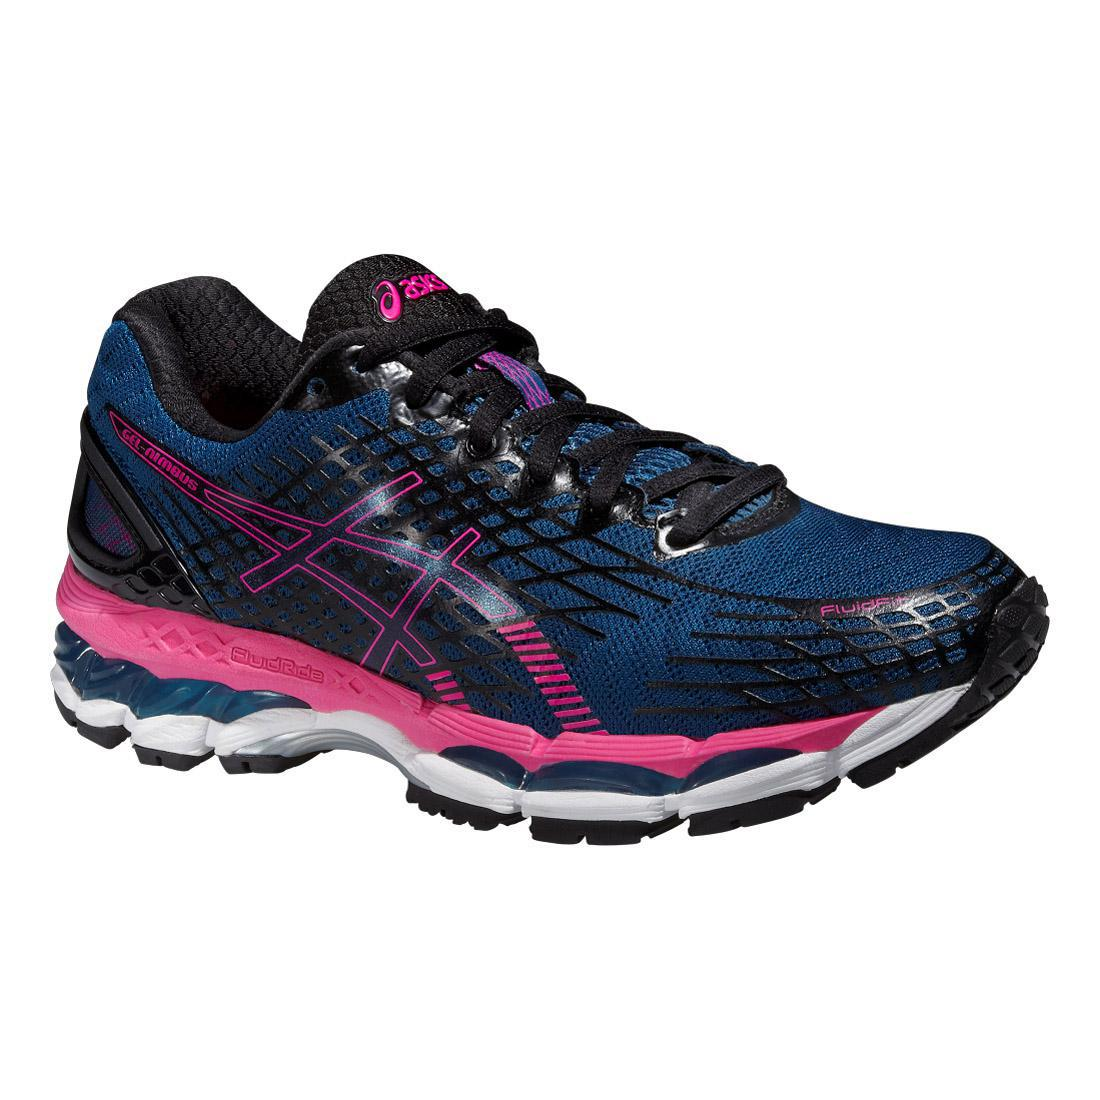 Asics Womens GEL Nimbus 17 Running Shoes Mosaic BluePink